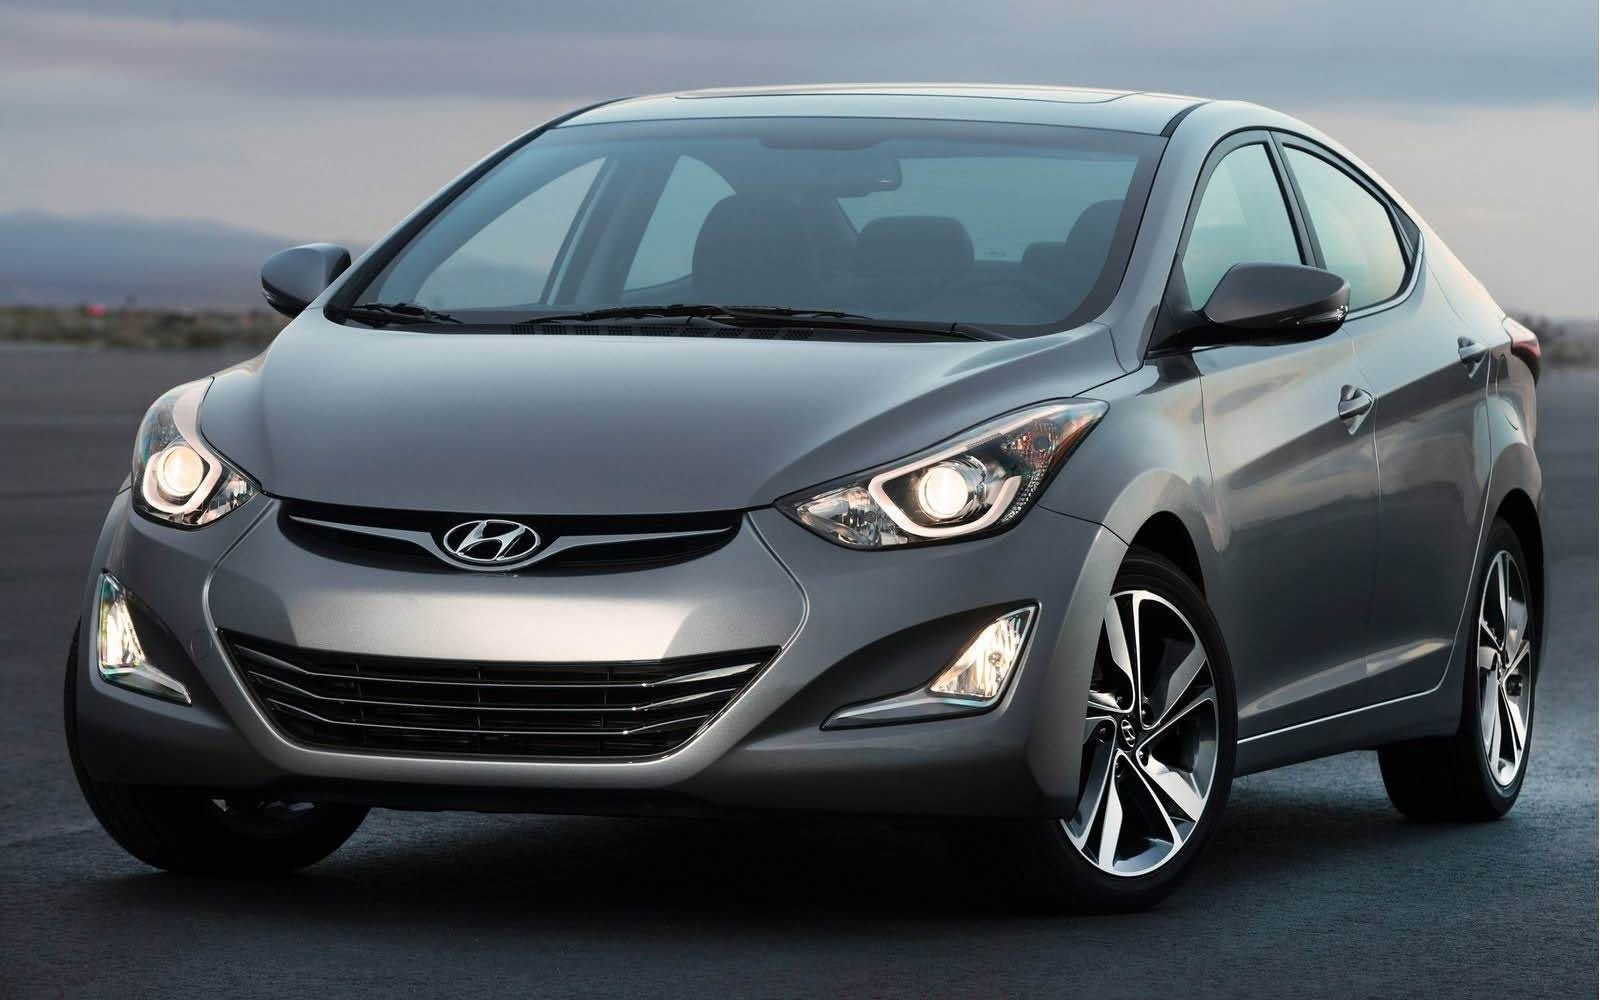 2020 hyundai elantra price, design and release date rumor - car